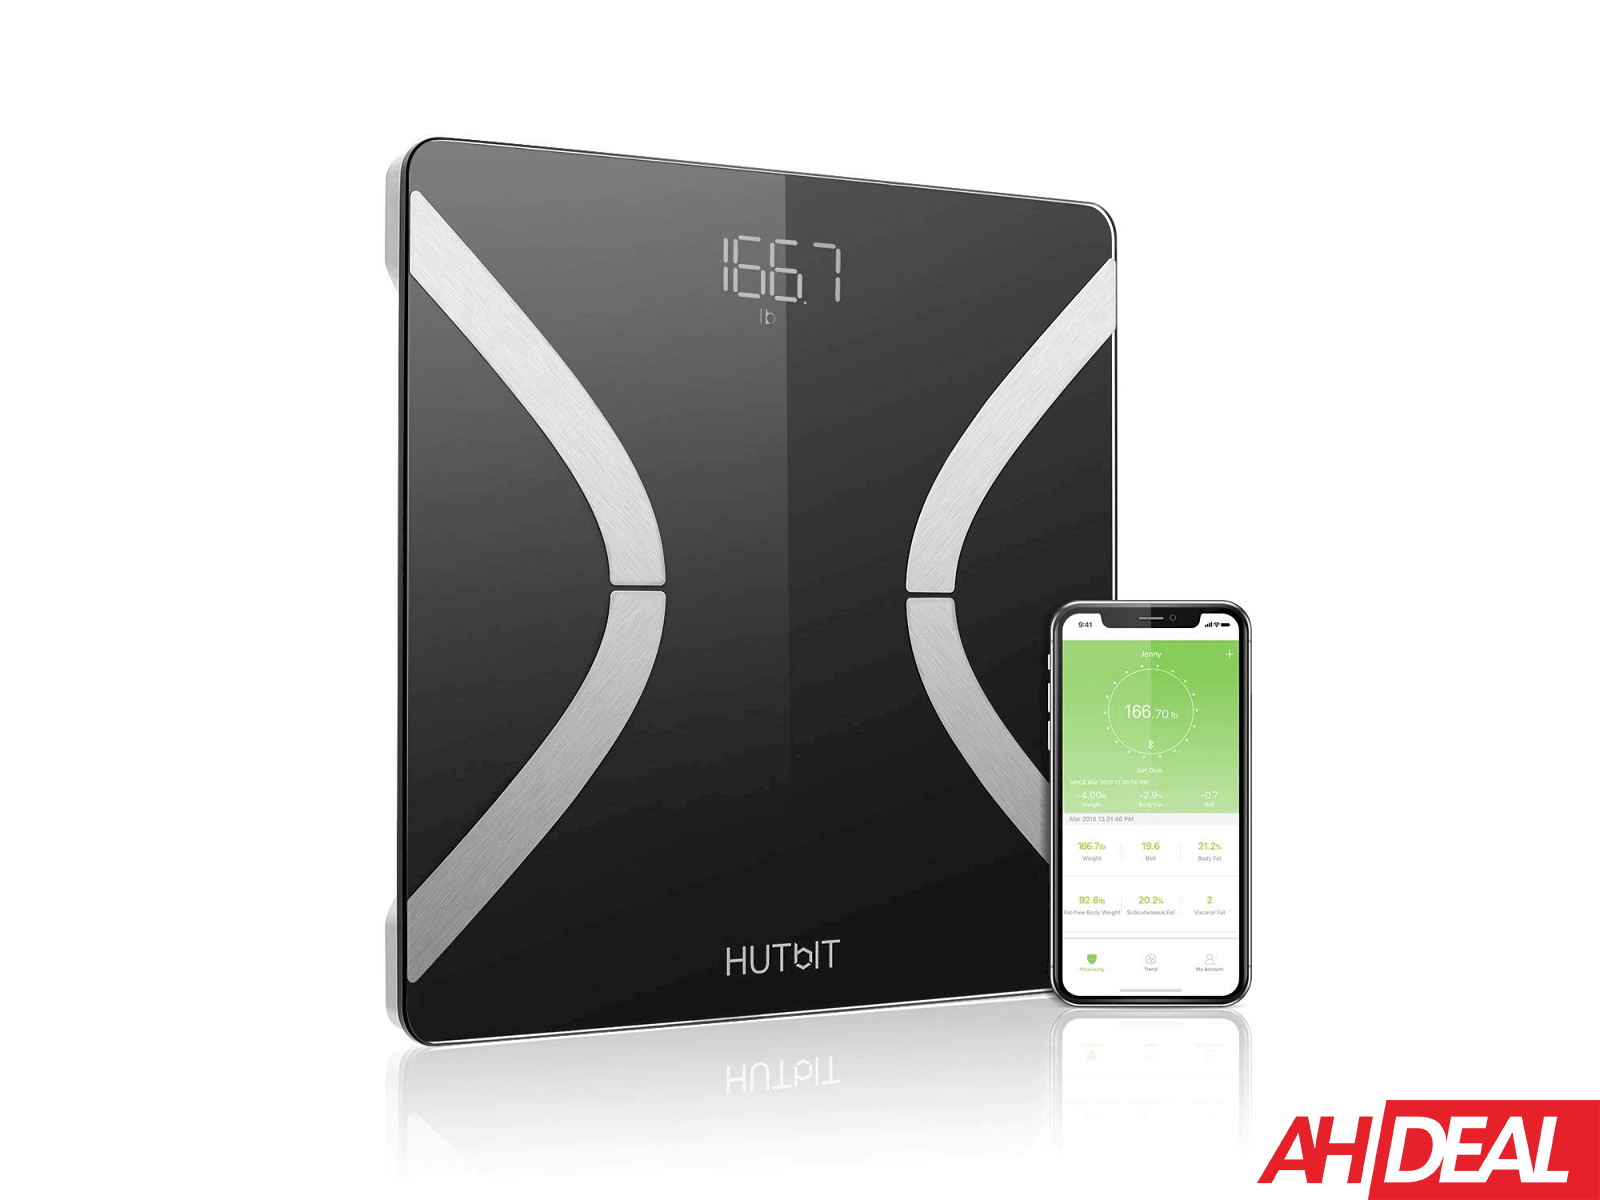 HUTbIT Smart Scale Deal New AH